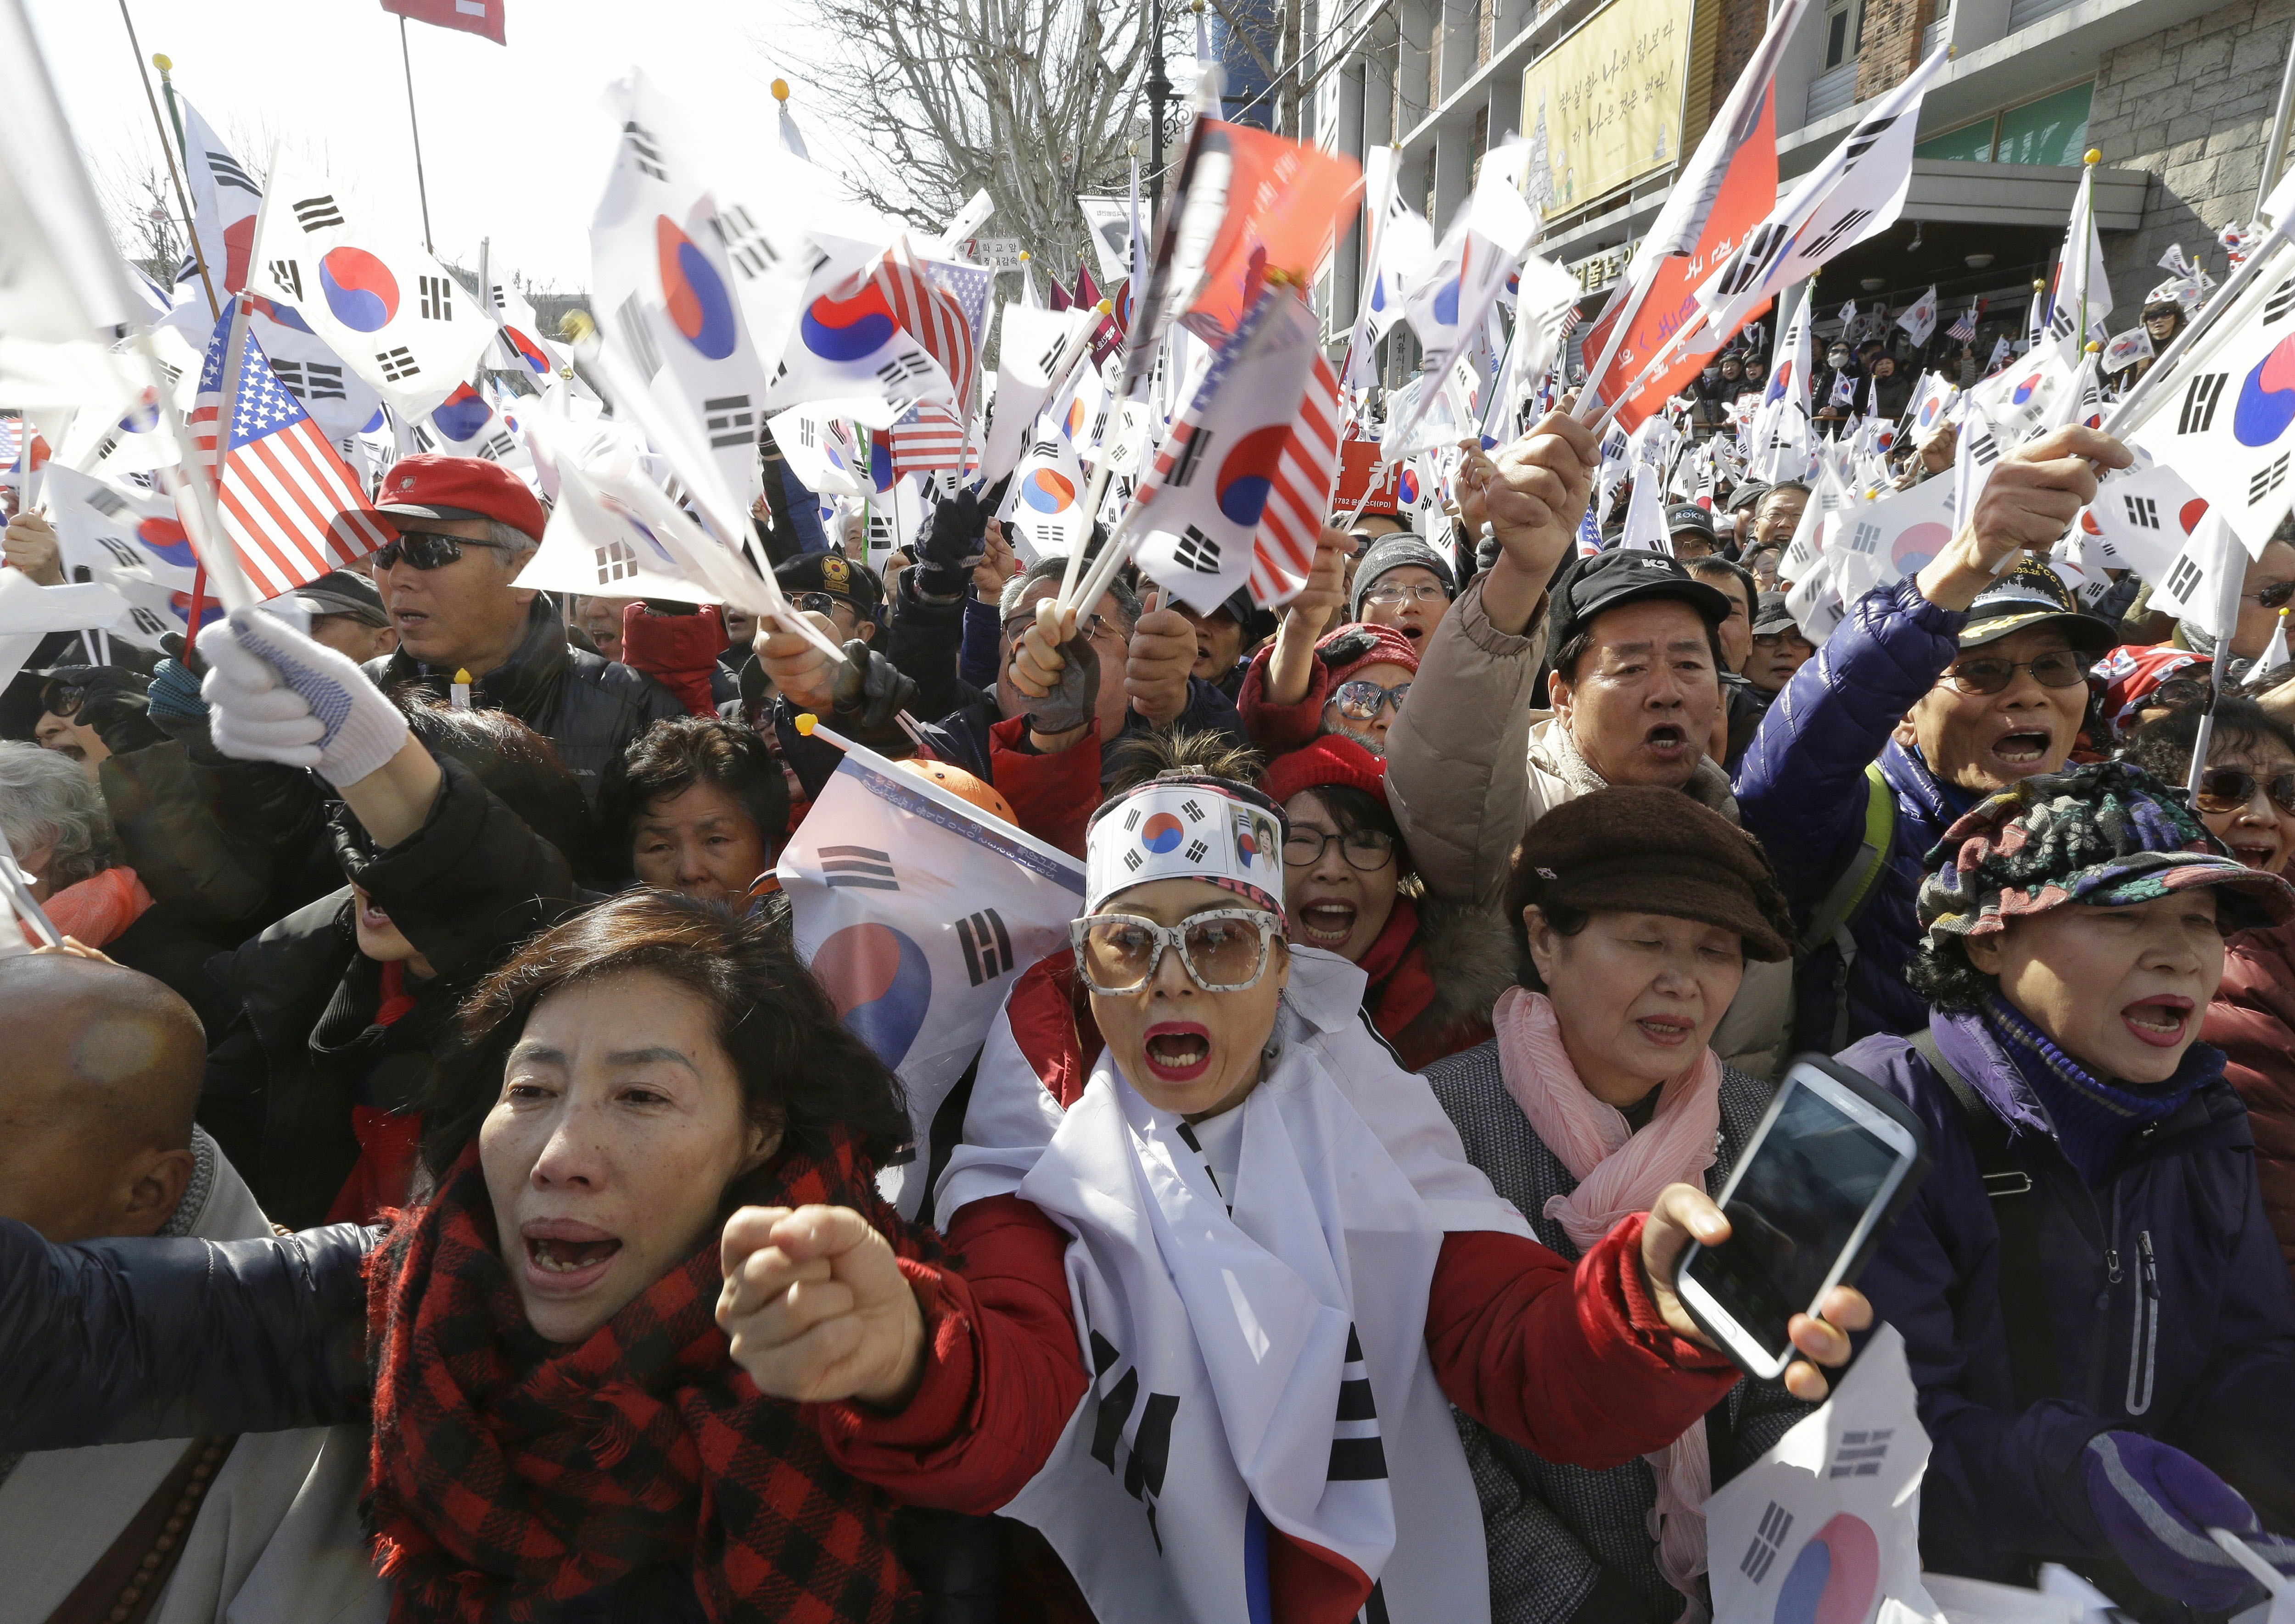 Supporters of South Korean President Park Geun-hye shout slogans during a rally opposing her impeachment near Constitutional Court in Seoul, South Korea on March 10, 2017. (AP Photo/Ahn Young-joon)